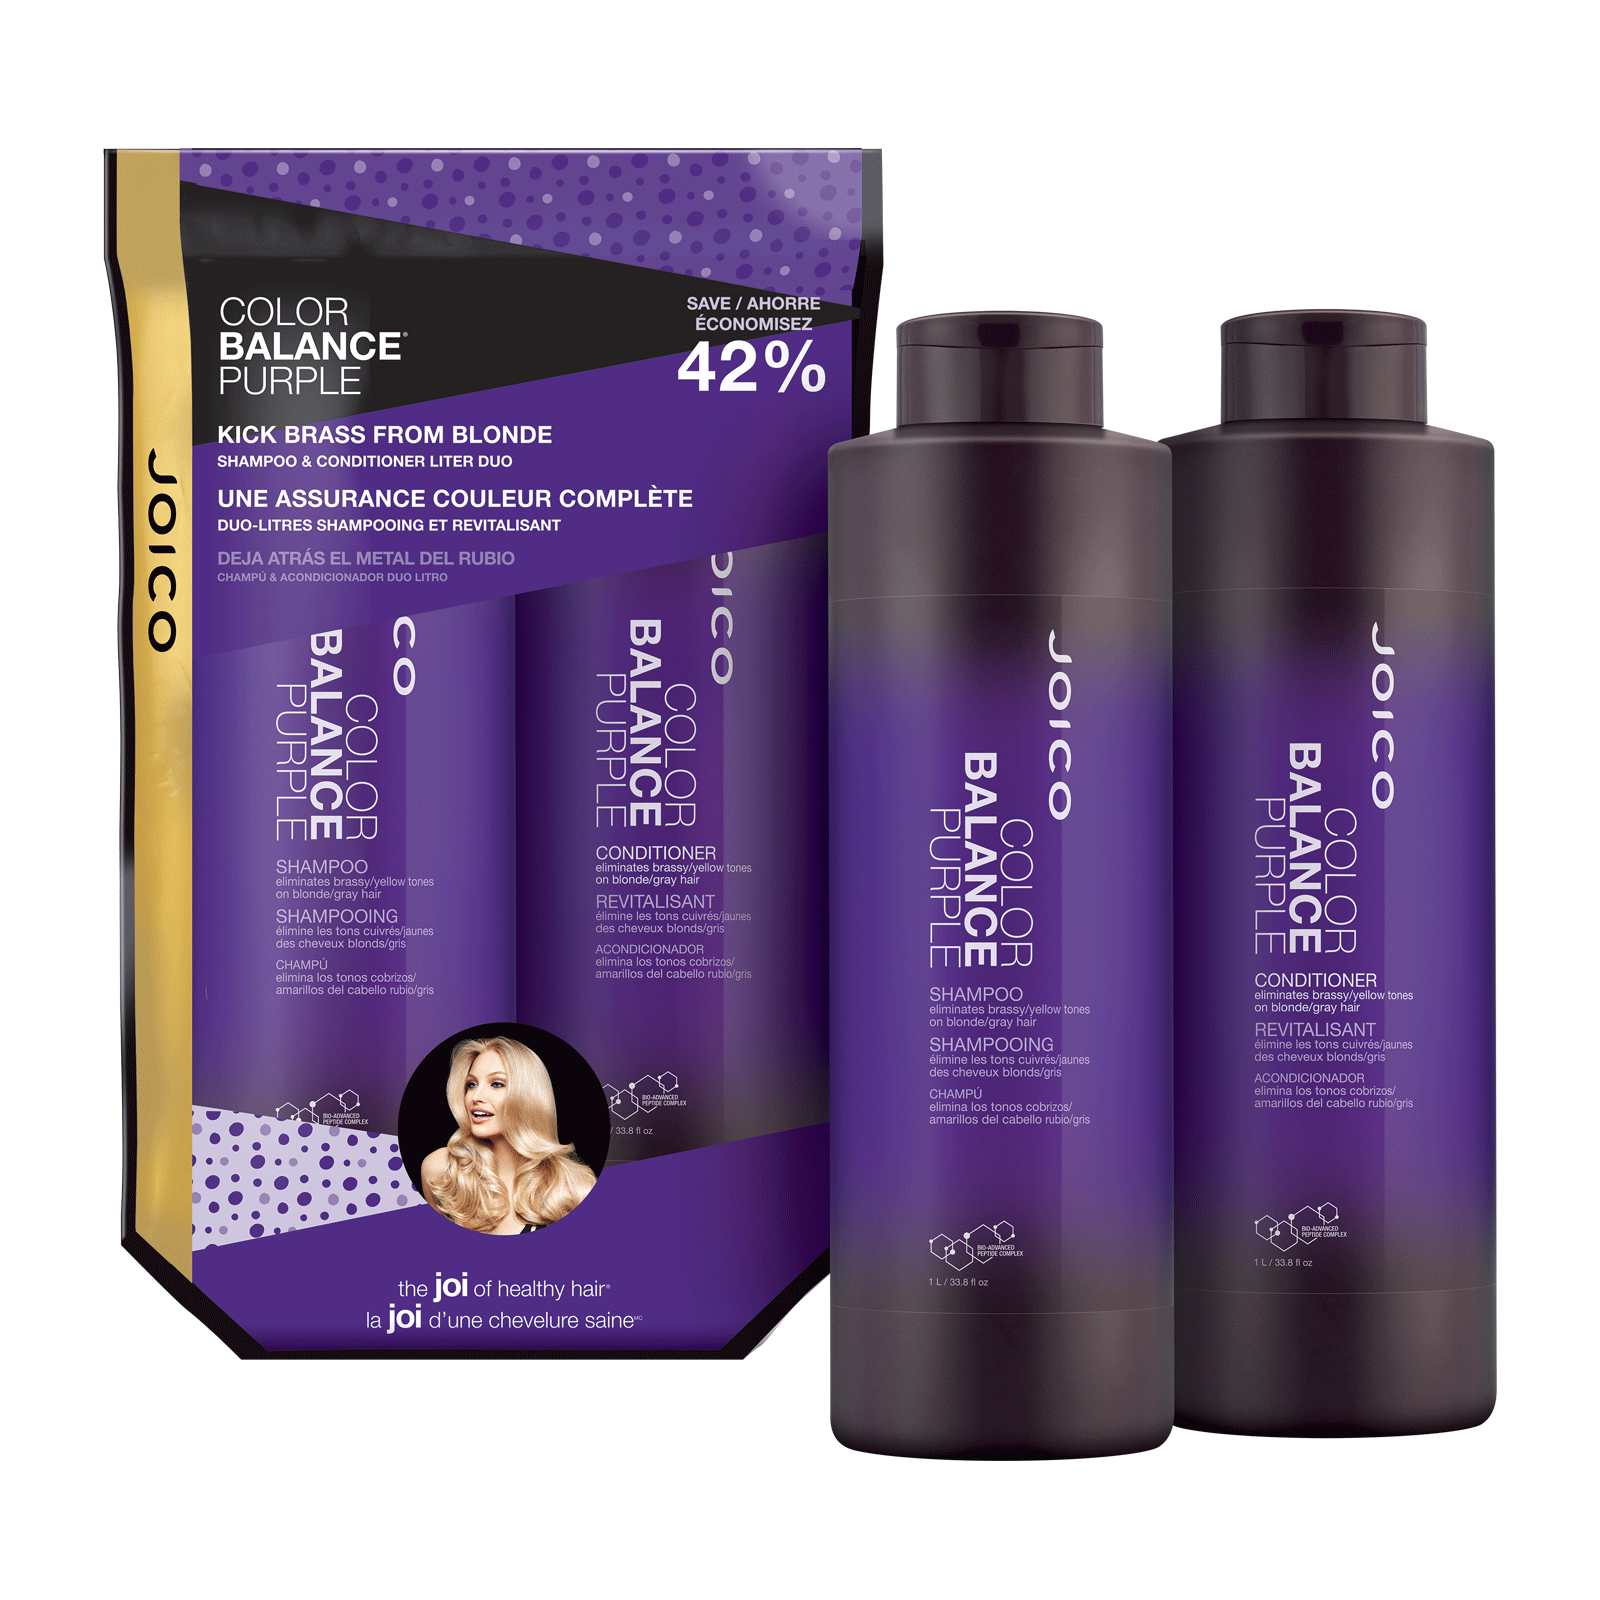 Color Balance Purple Shampoo & Conditioner Duo